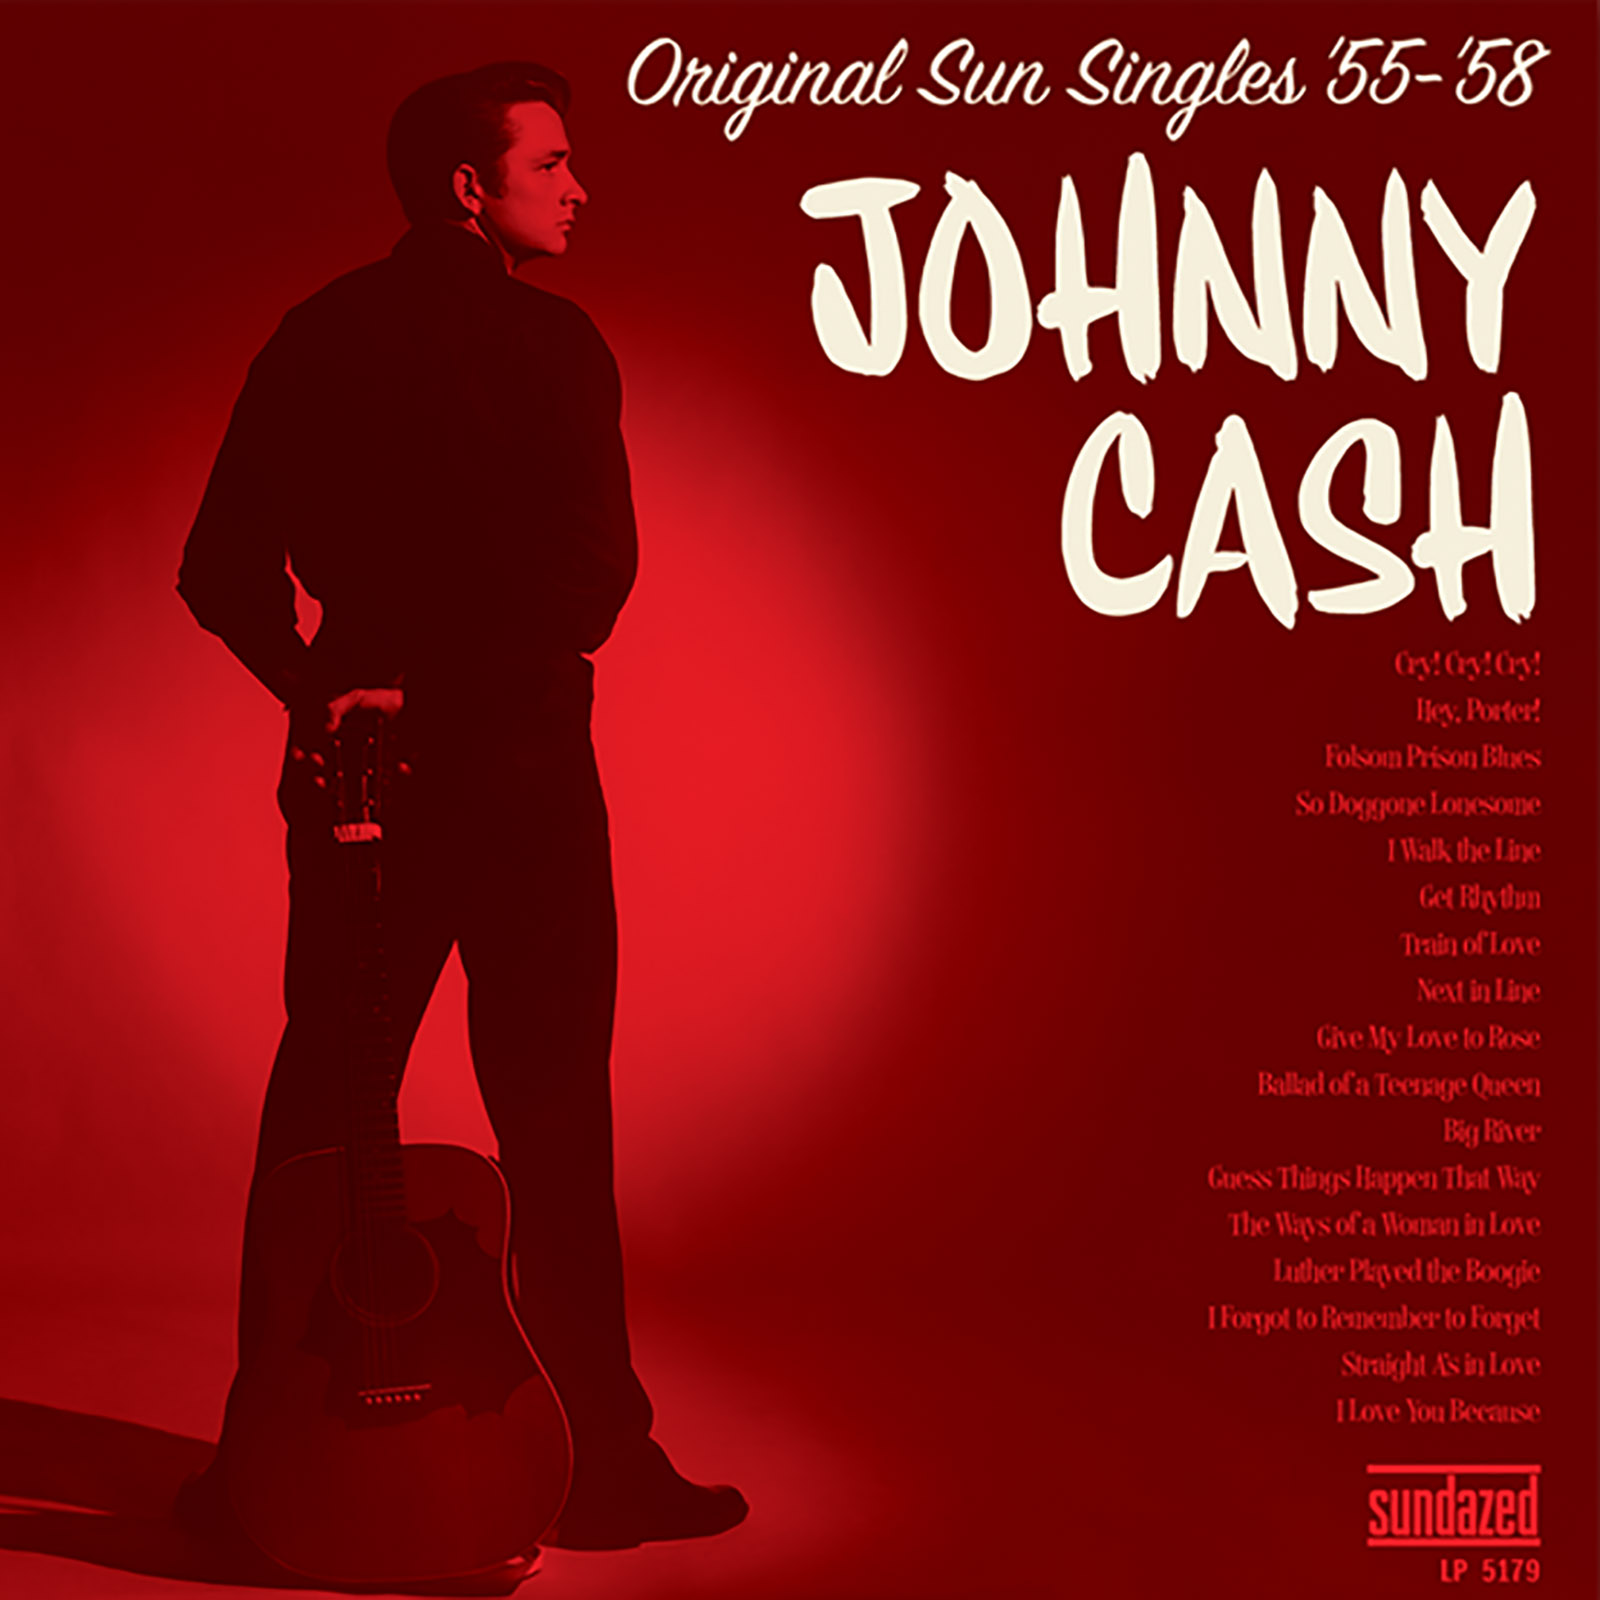 Cash, Johnny - Original Sun Singles 55-58 2 LP Set